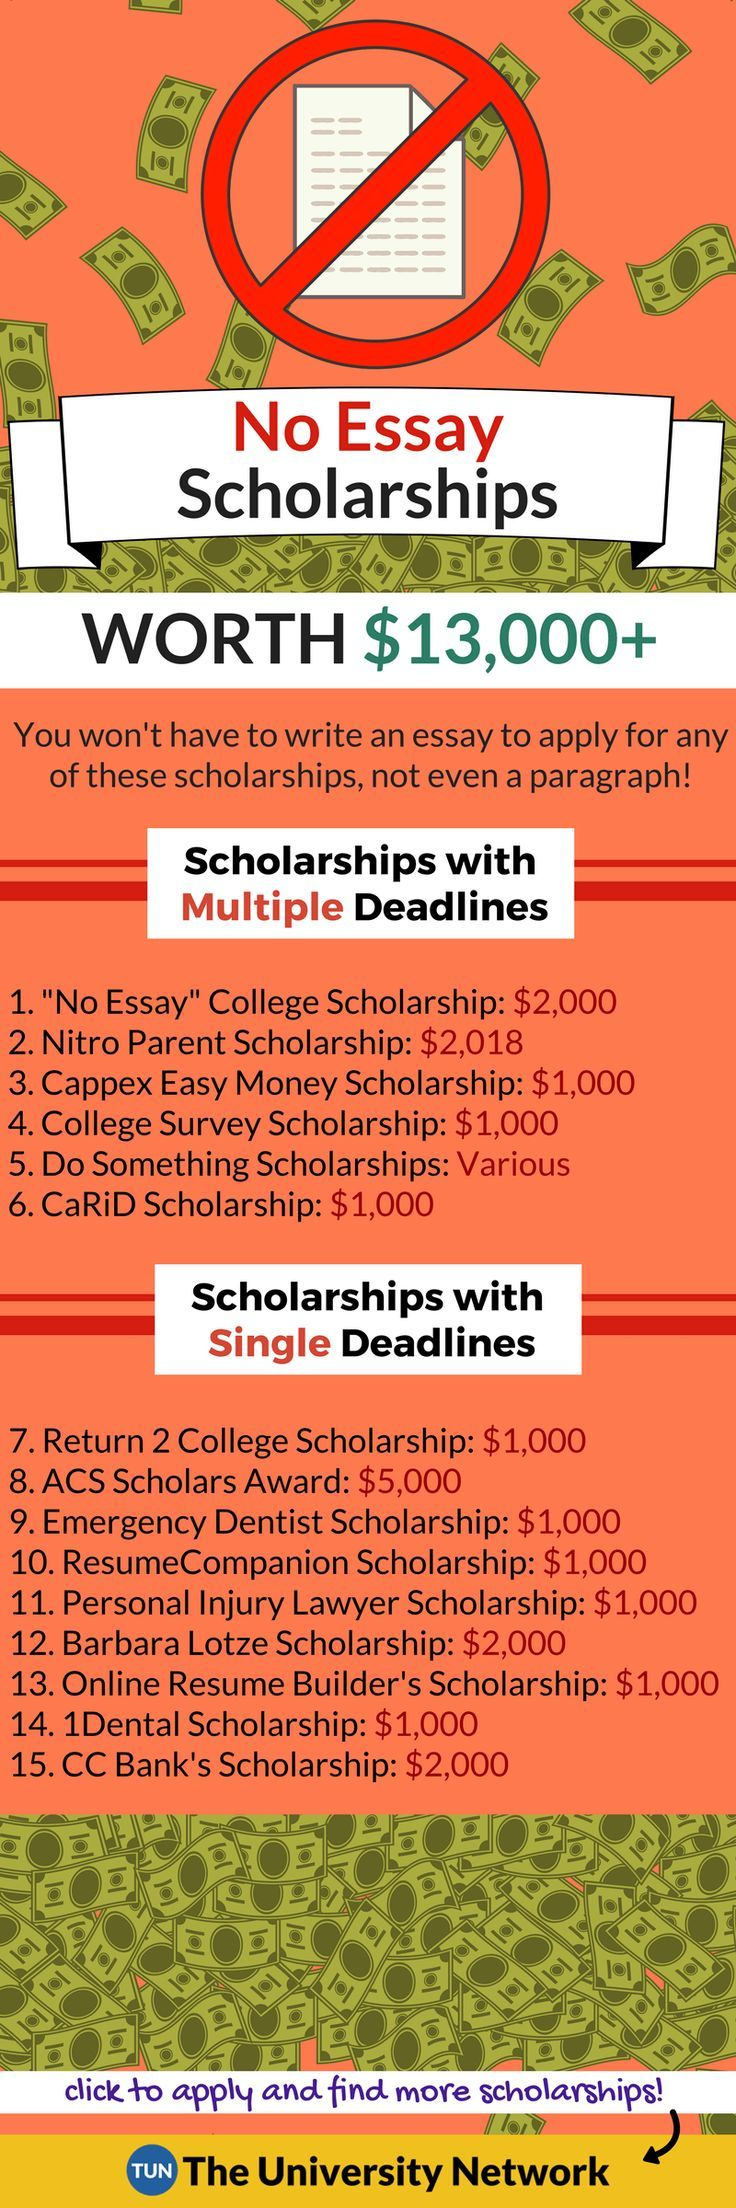 013 Essay Example No Exceptional Scholarships For Undergraduates High School Seniors College Students 2019 Full